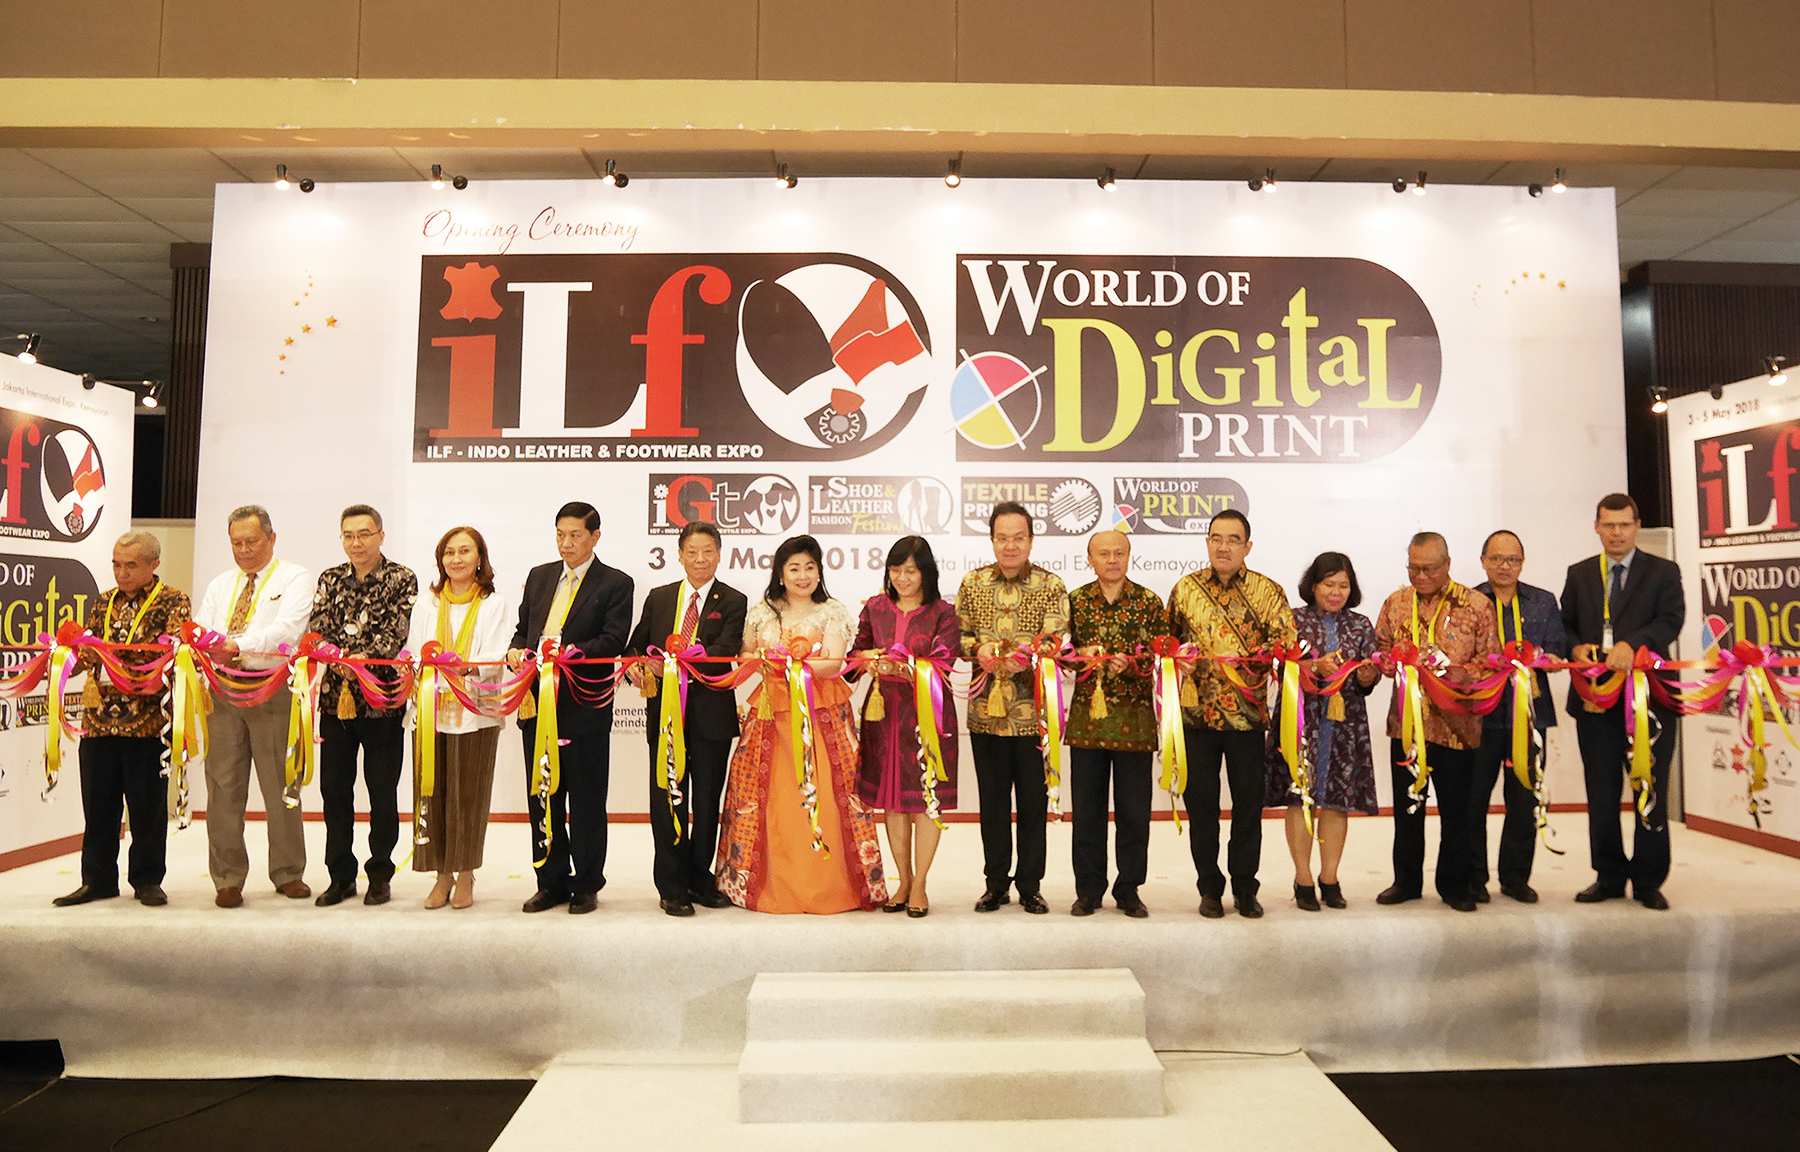 World of Digital Print Expo 2018